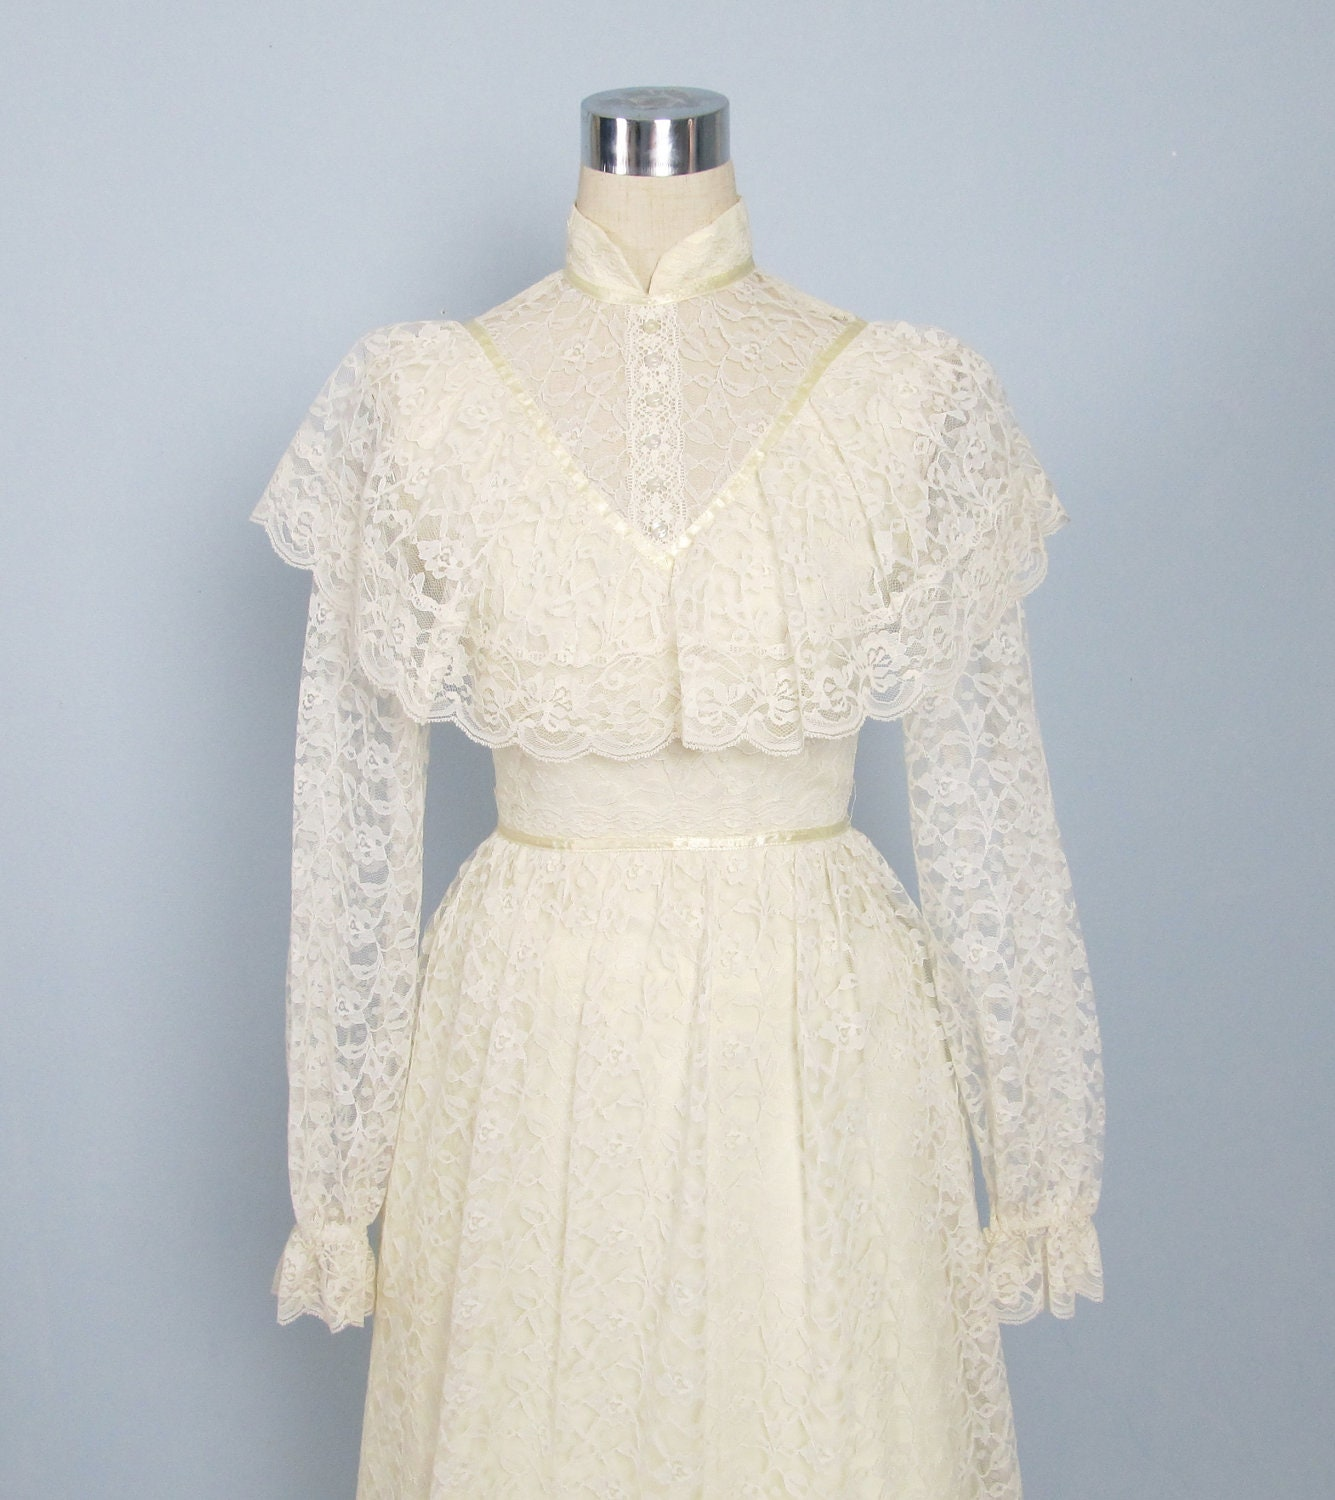 Vintage 1970 39 s creme victorian lace wedding dress long for 1970s wedding dresses for sale